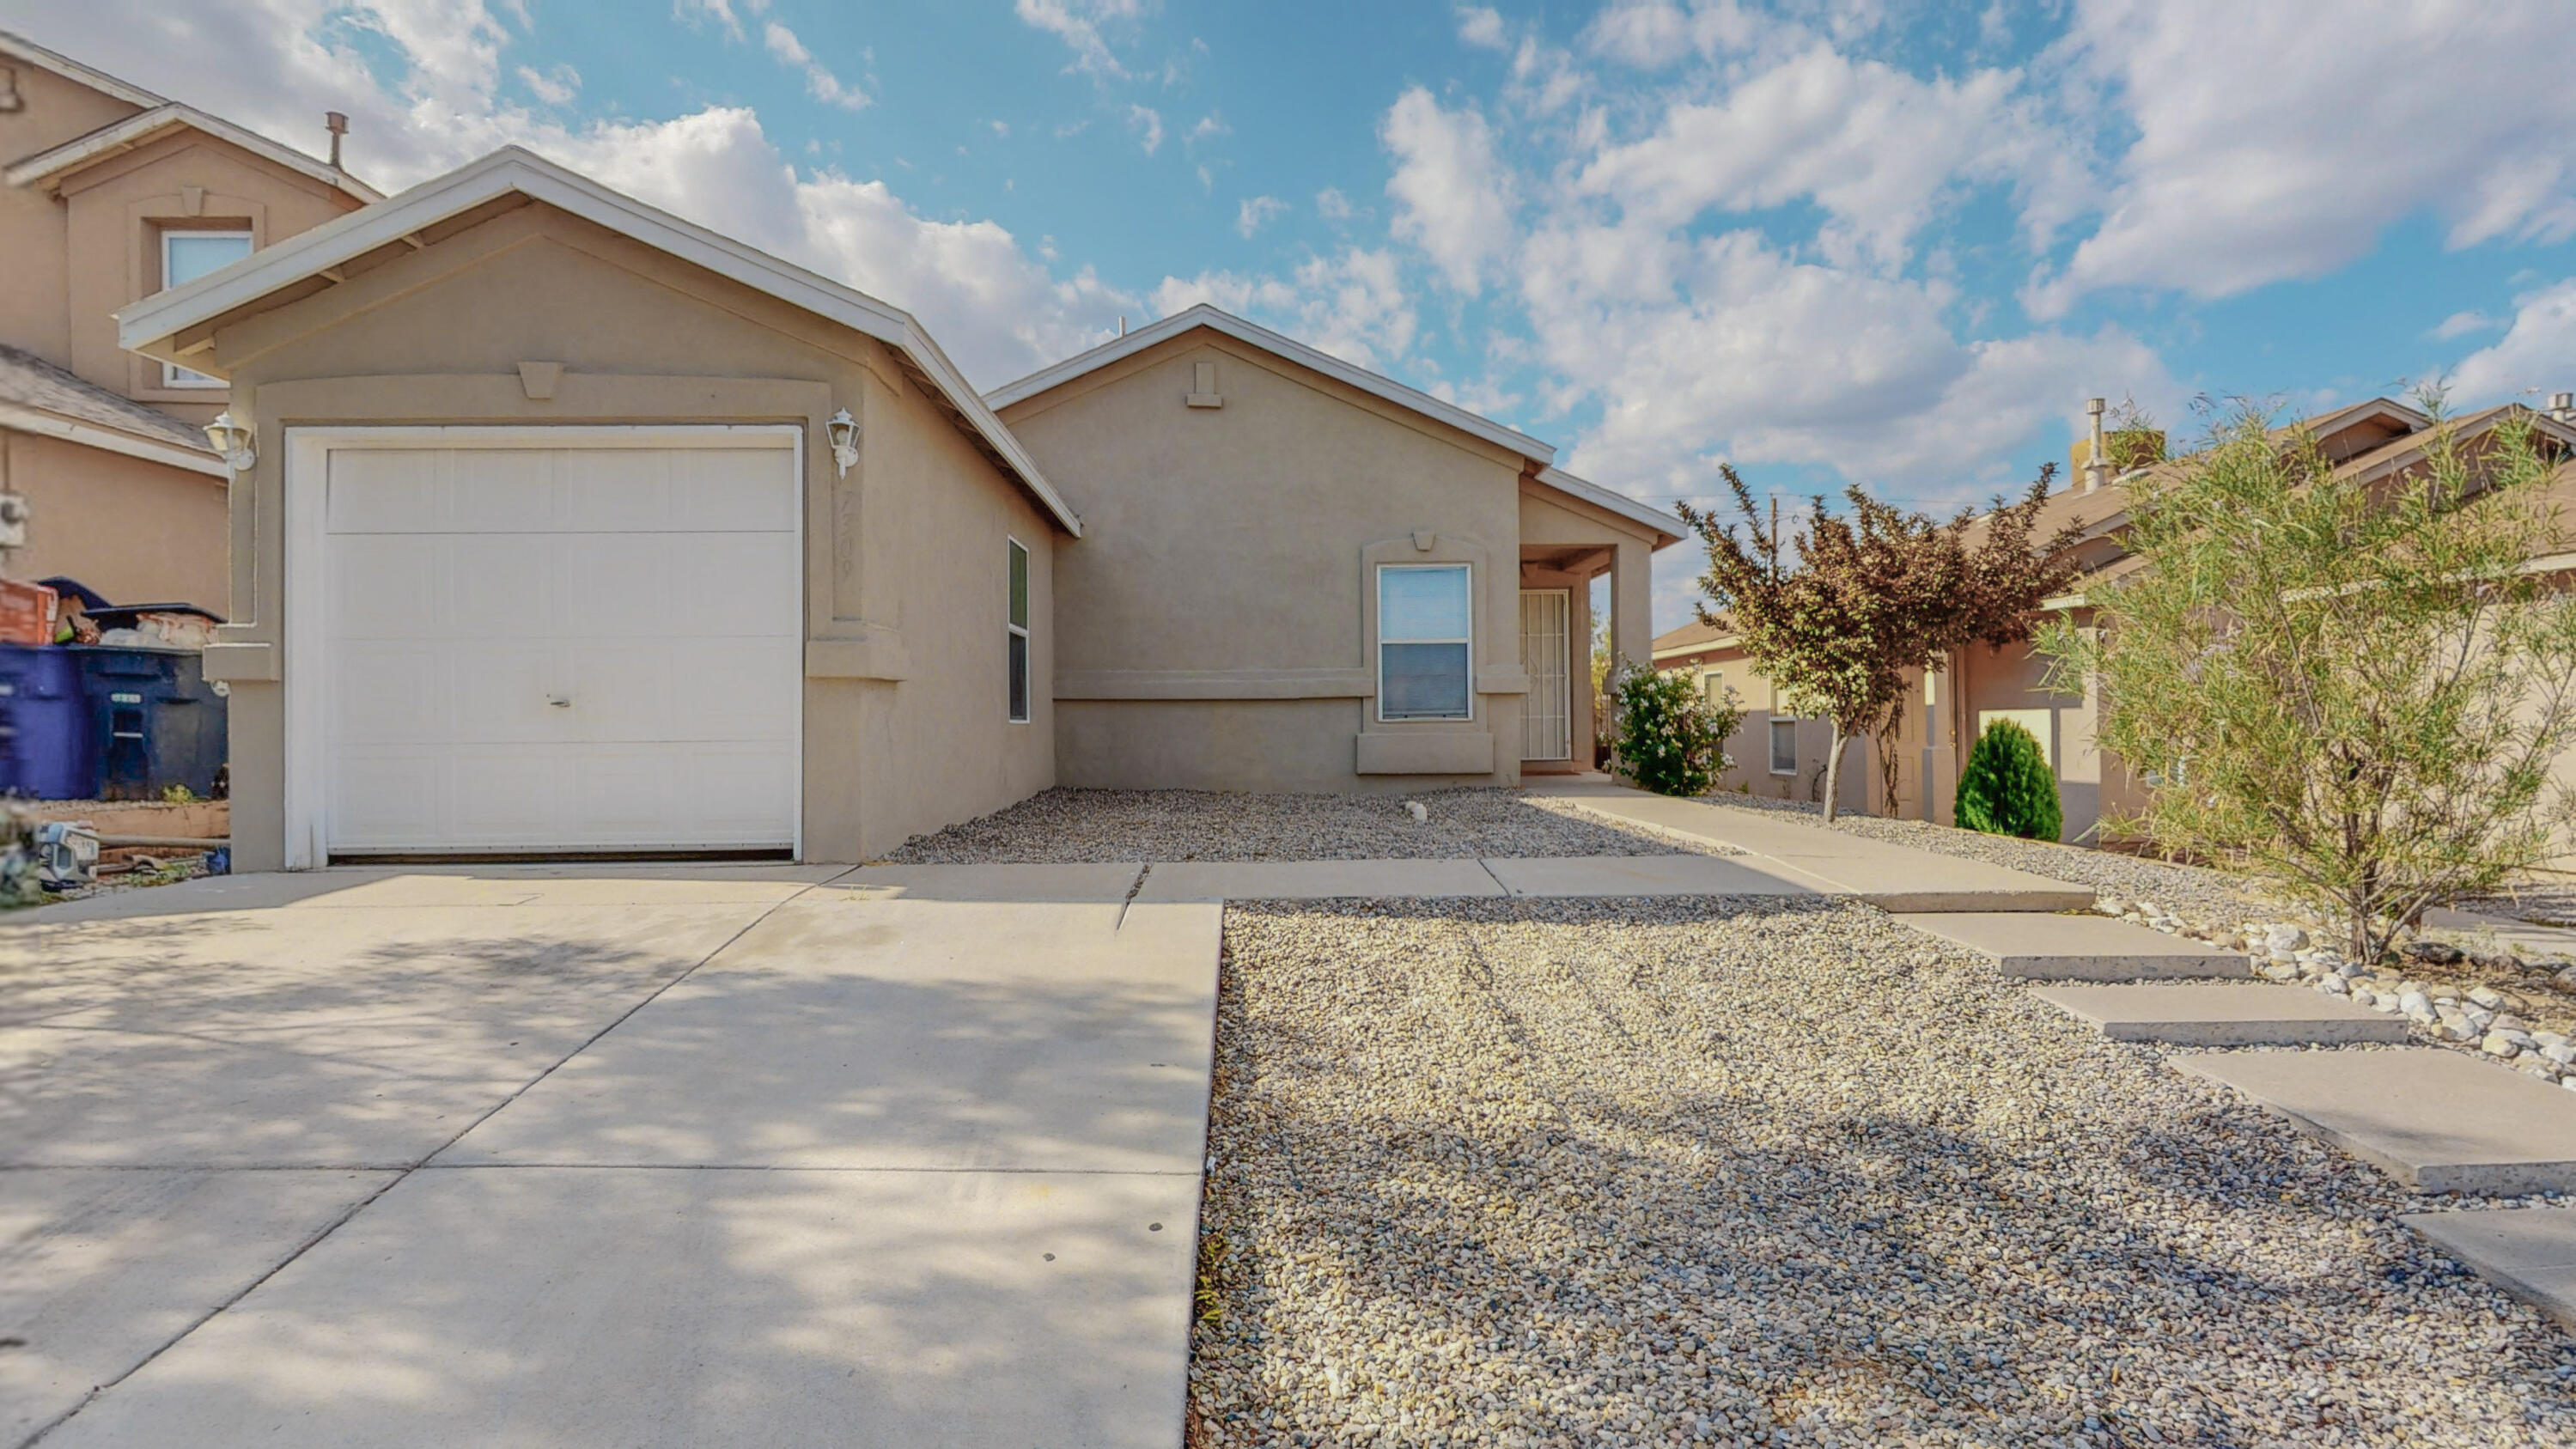 This is an adorable property! Cute two bedroom with 1 3/4 bath.  Contemporary colors with lots of tile.  Great kitchen with nice appliances, pantry and eat at island.  Wonderful master bedroom bath with walk in shell shower. Nice back patio with  shed and a beautiful tree. Security front door.Come see us!